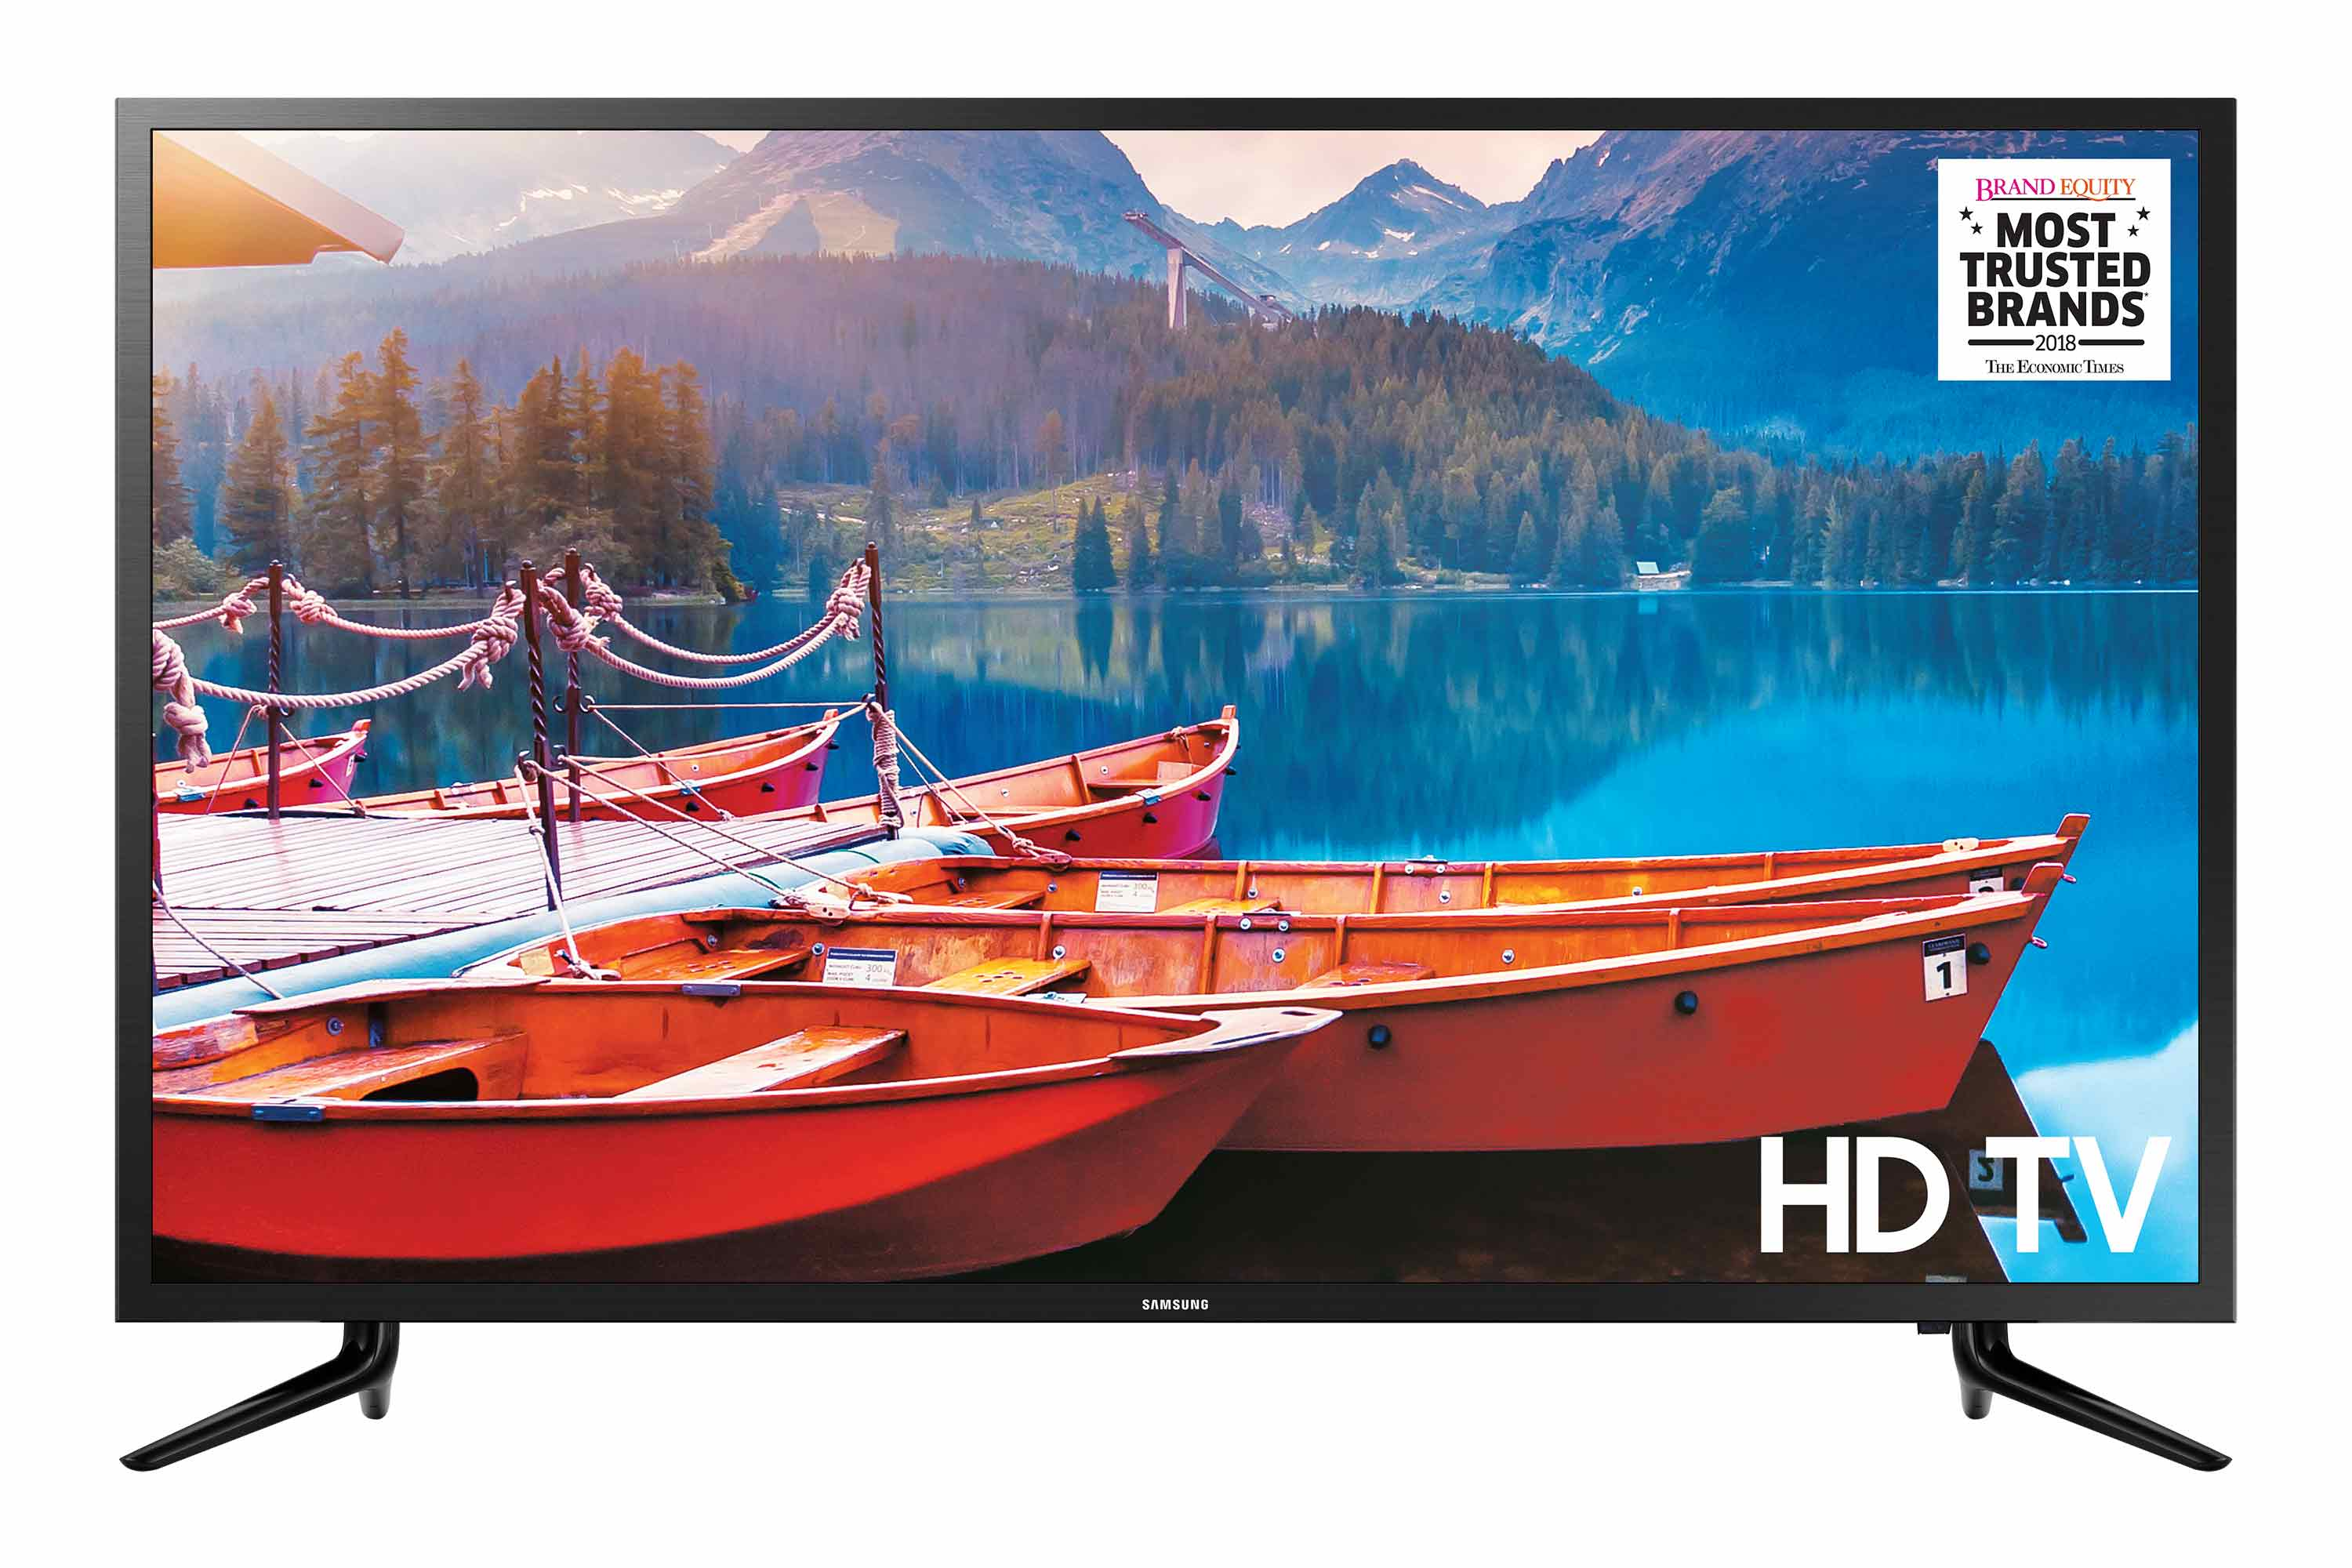 Samsung 32 Inch (80cm) 4310 HD Ready LED Smart TV